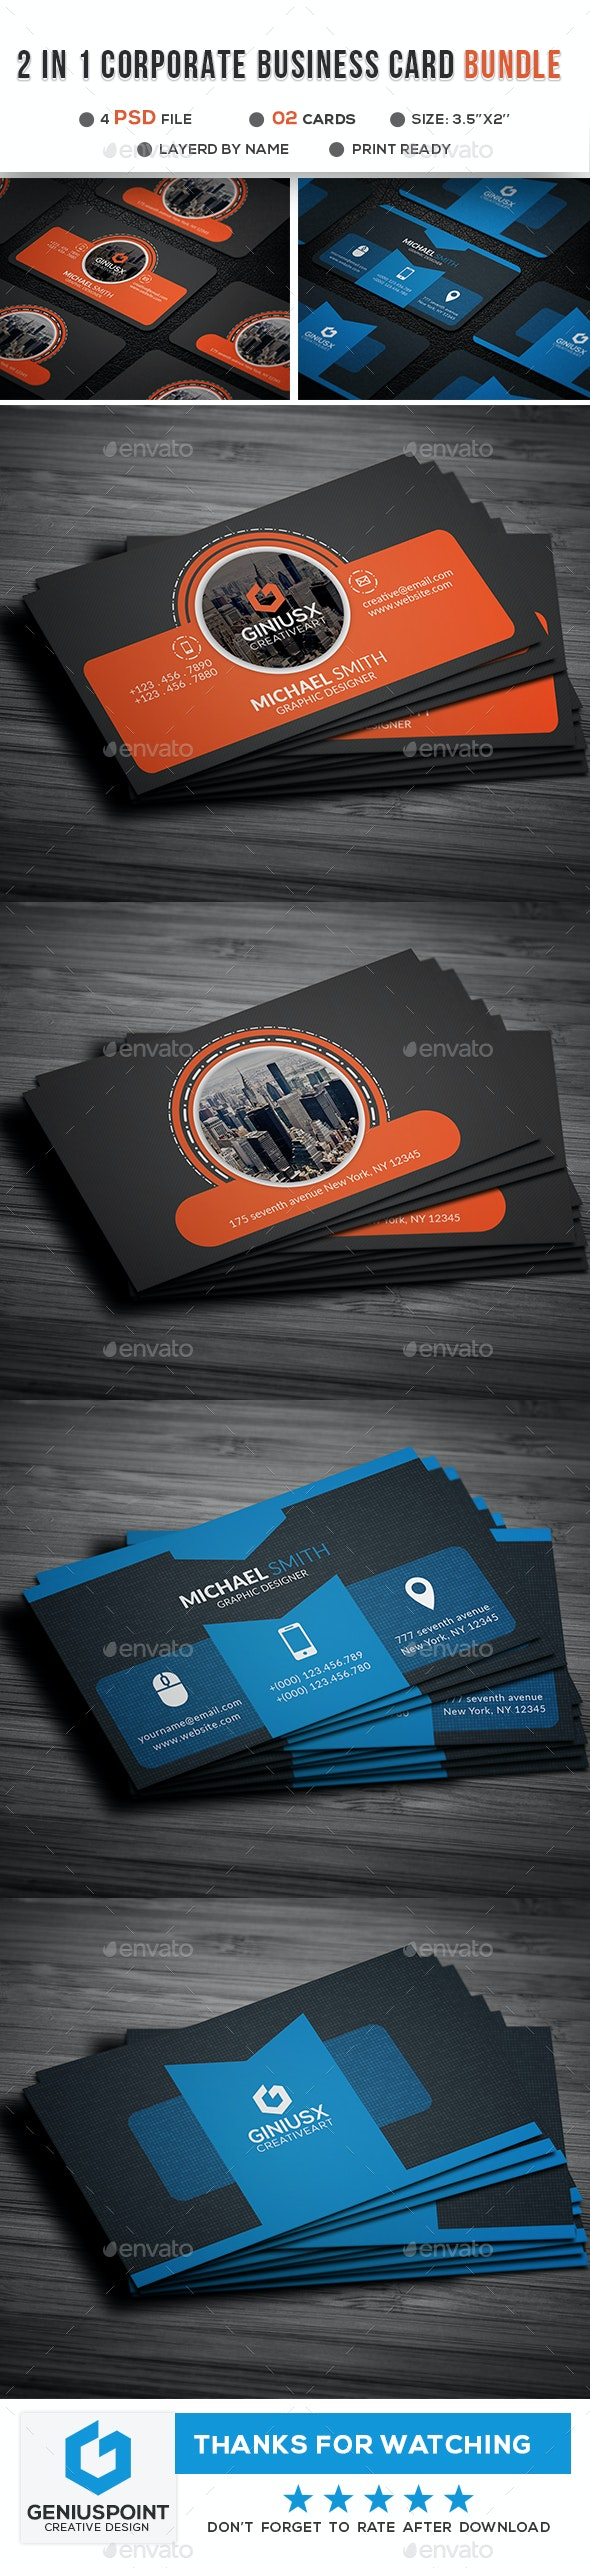 2 in 1 Corporate Business Card - Business Cards Print Templates